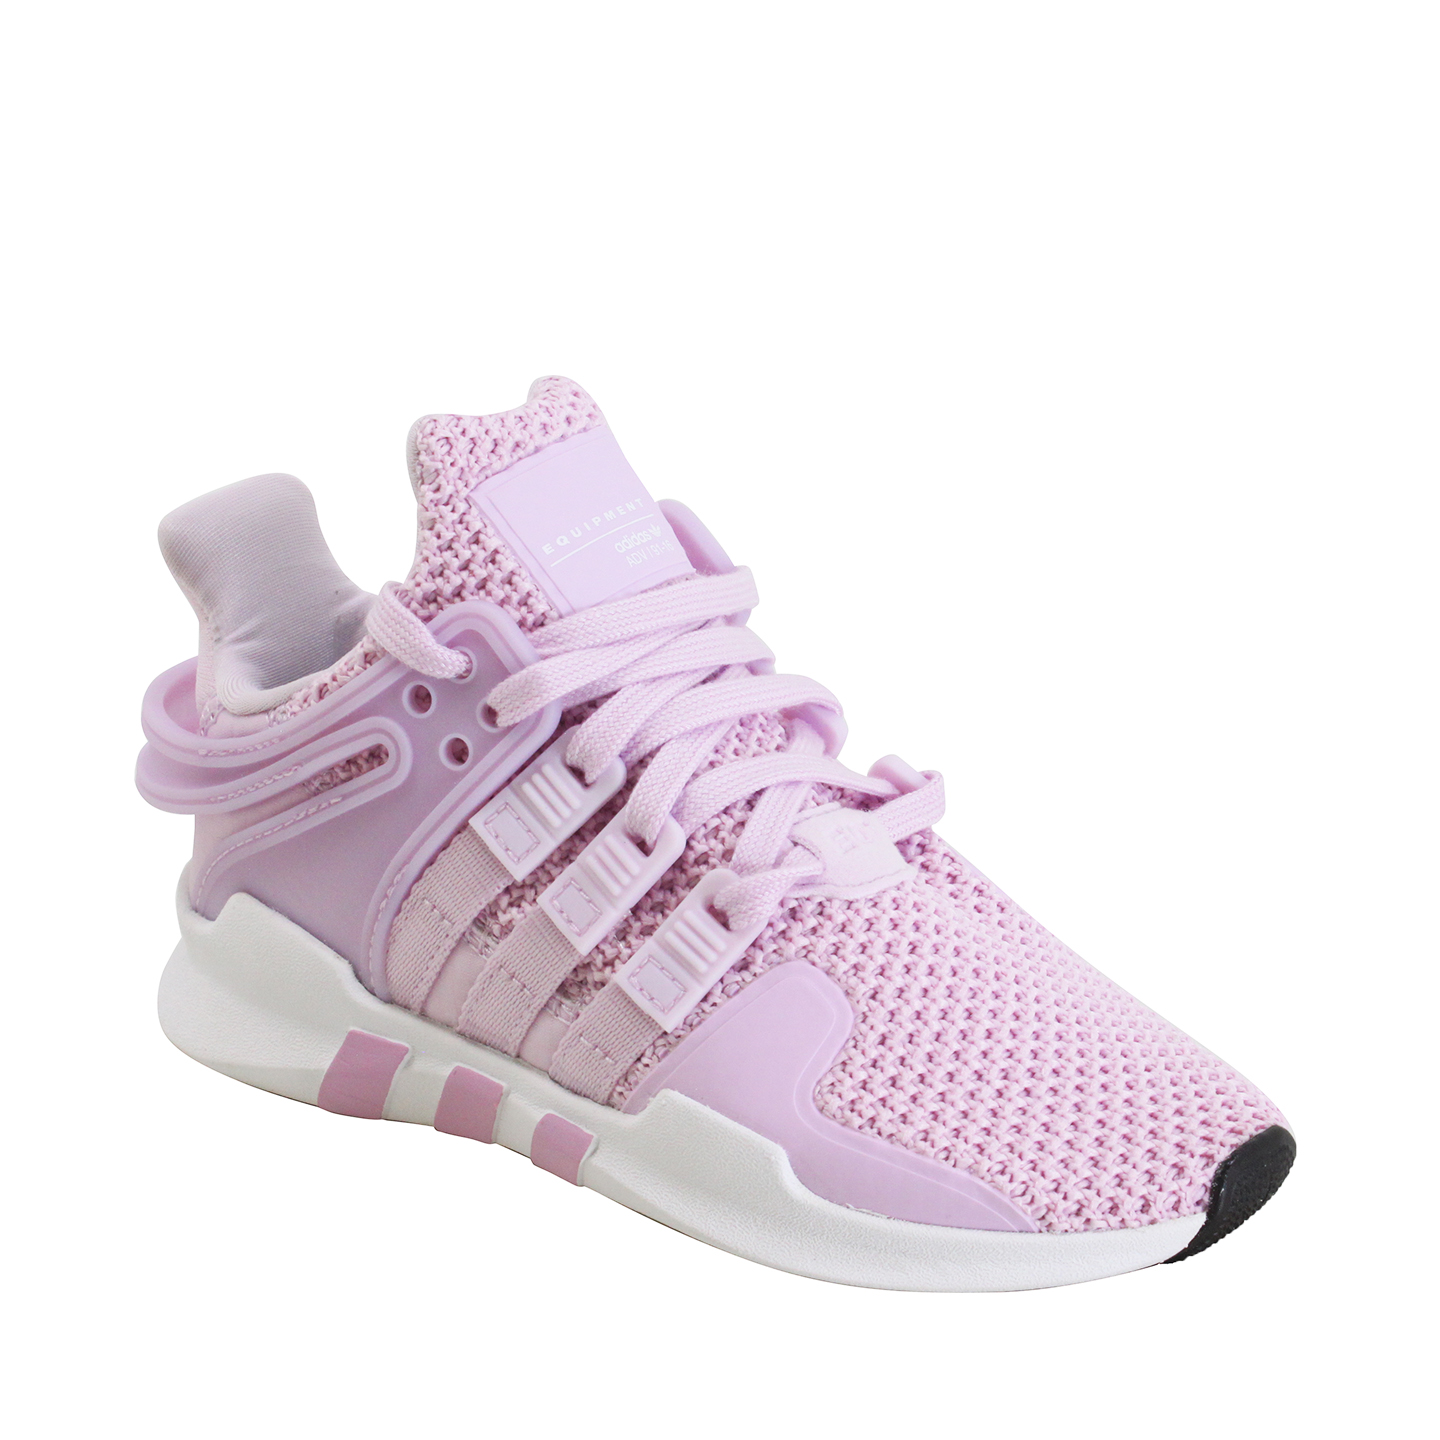 new style f1294 2954a K EQT Support ADV - Pink/White/Sub GreenGirls - Flying Point ...